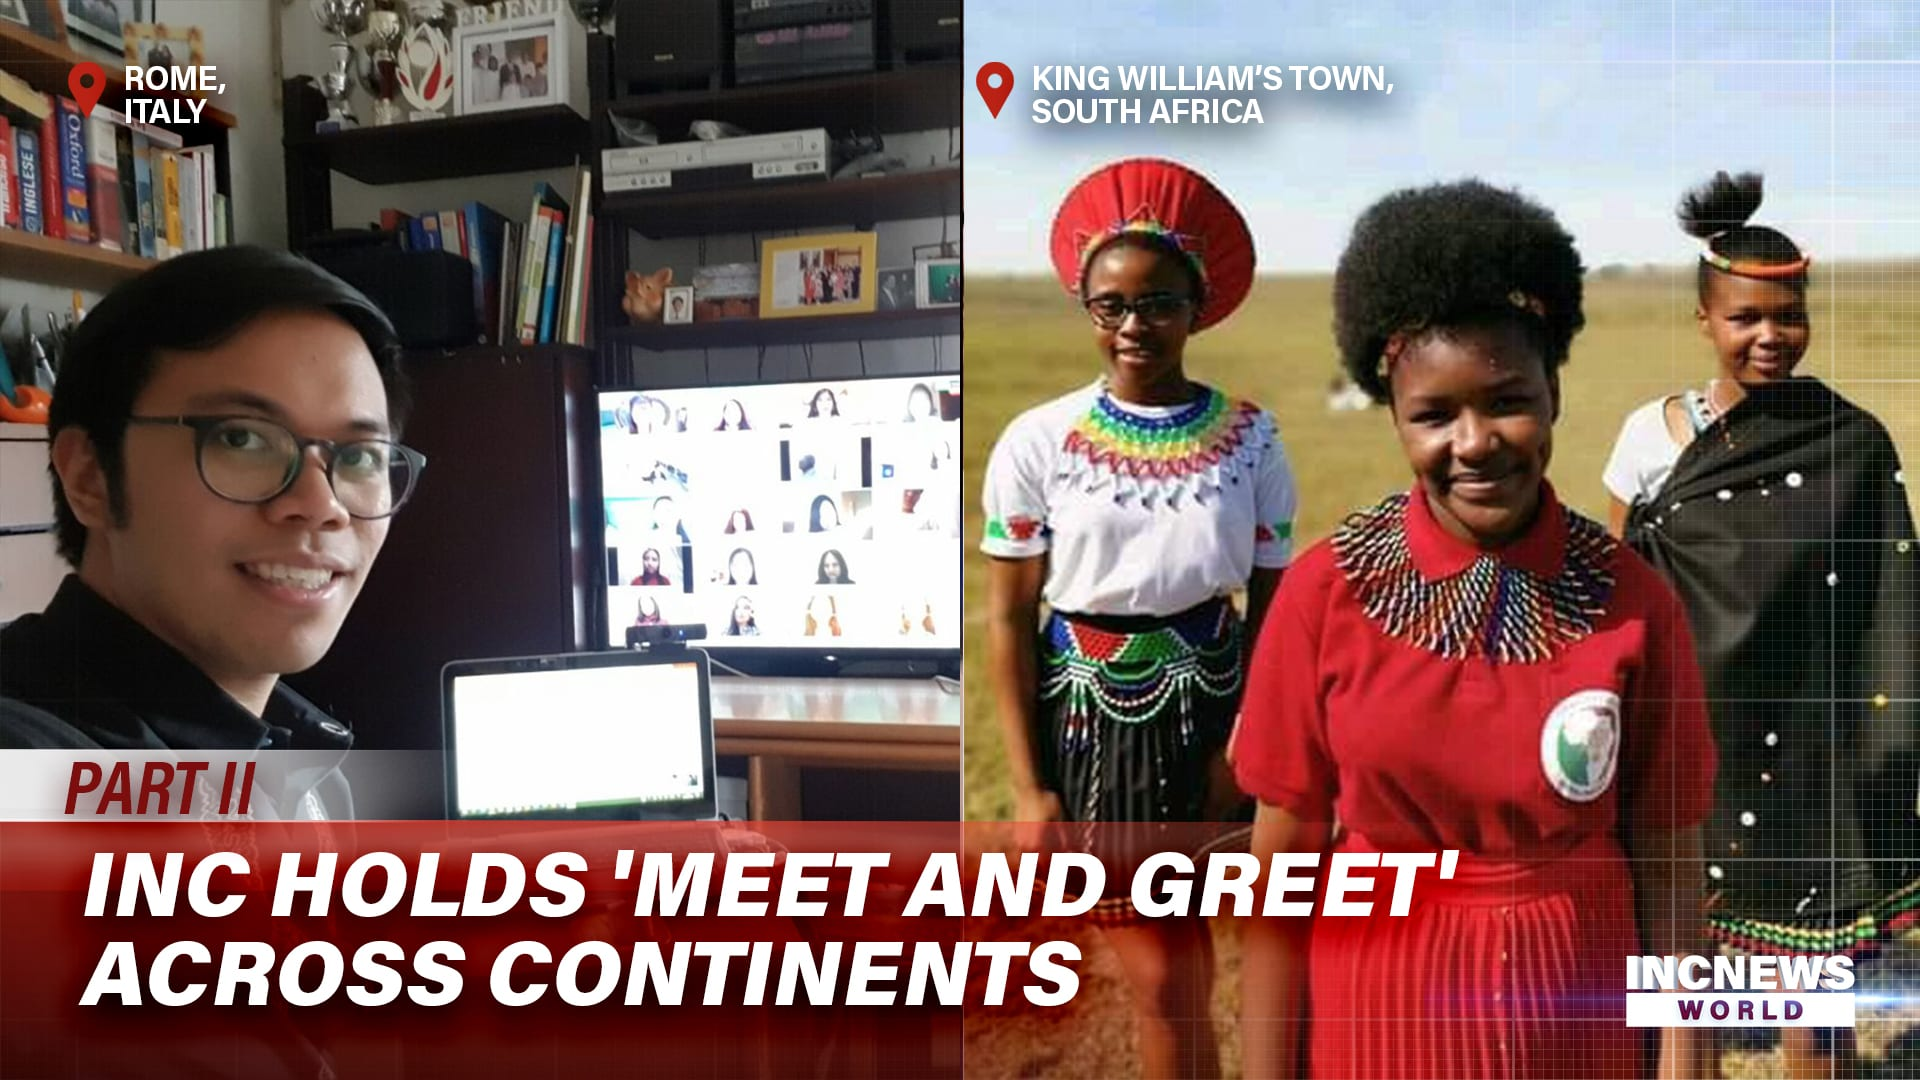 INC Holds 'Meet and Greet' Across Continents